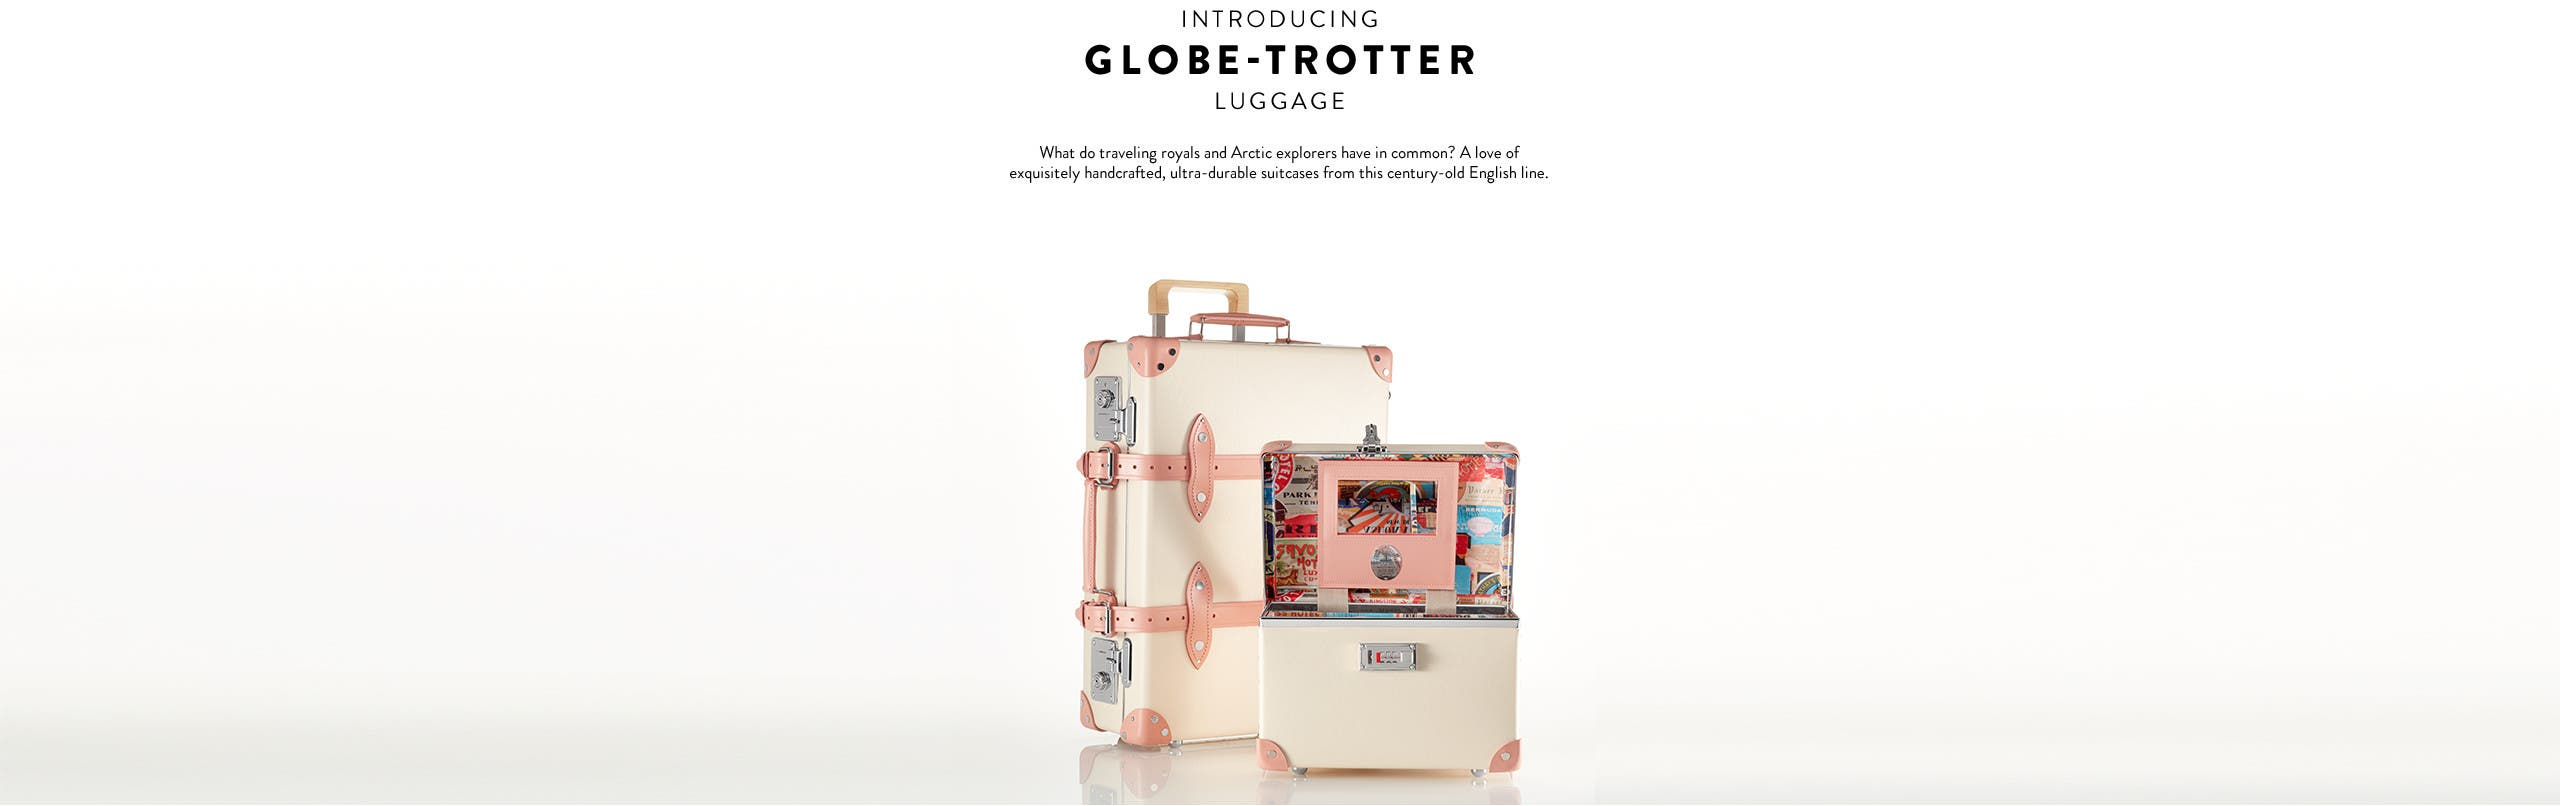 Introducing Globe-Trotter Luggage.